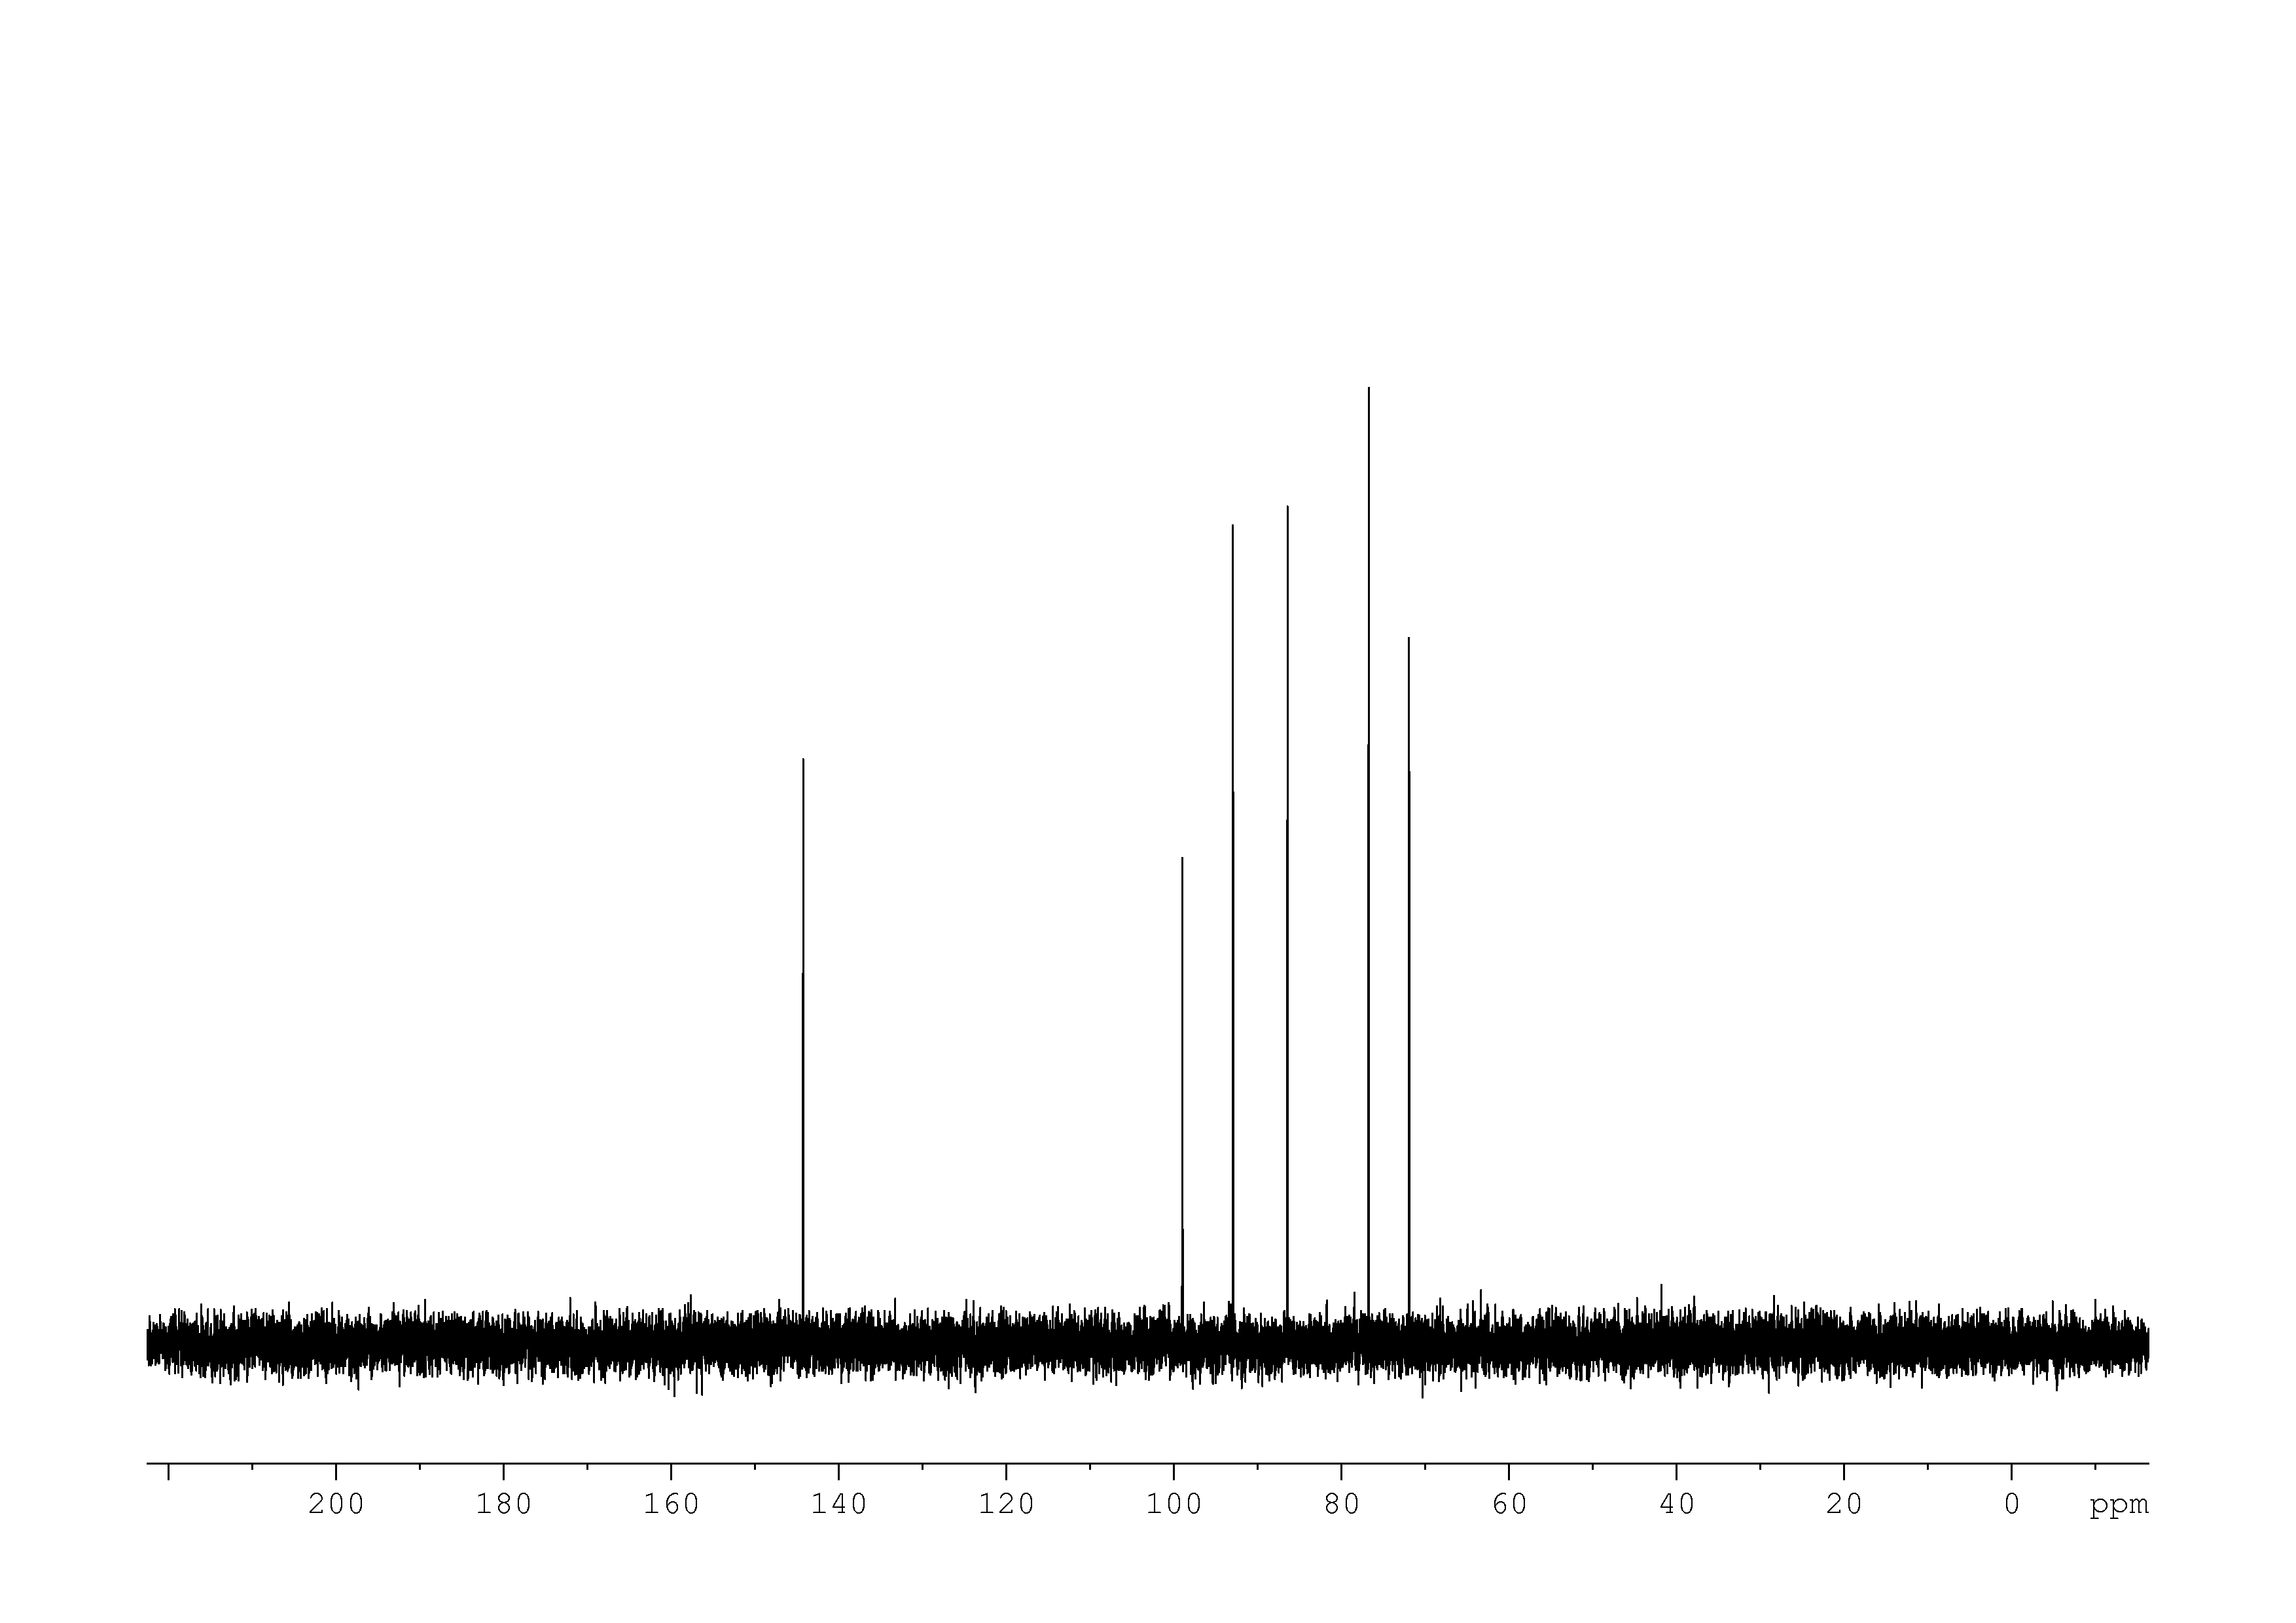 1D DEPT90, 7.4 spectrum for Cytidine